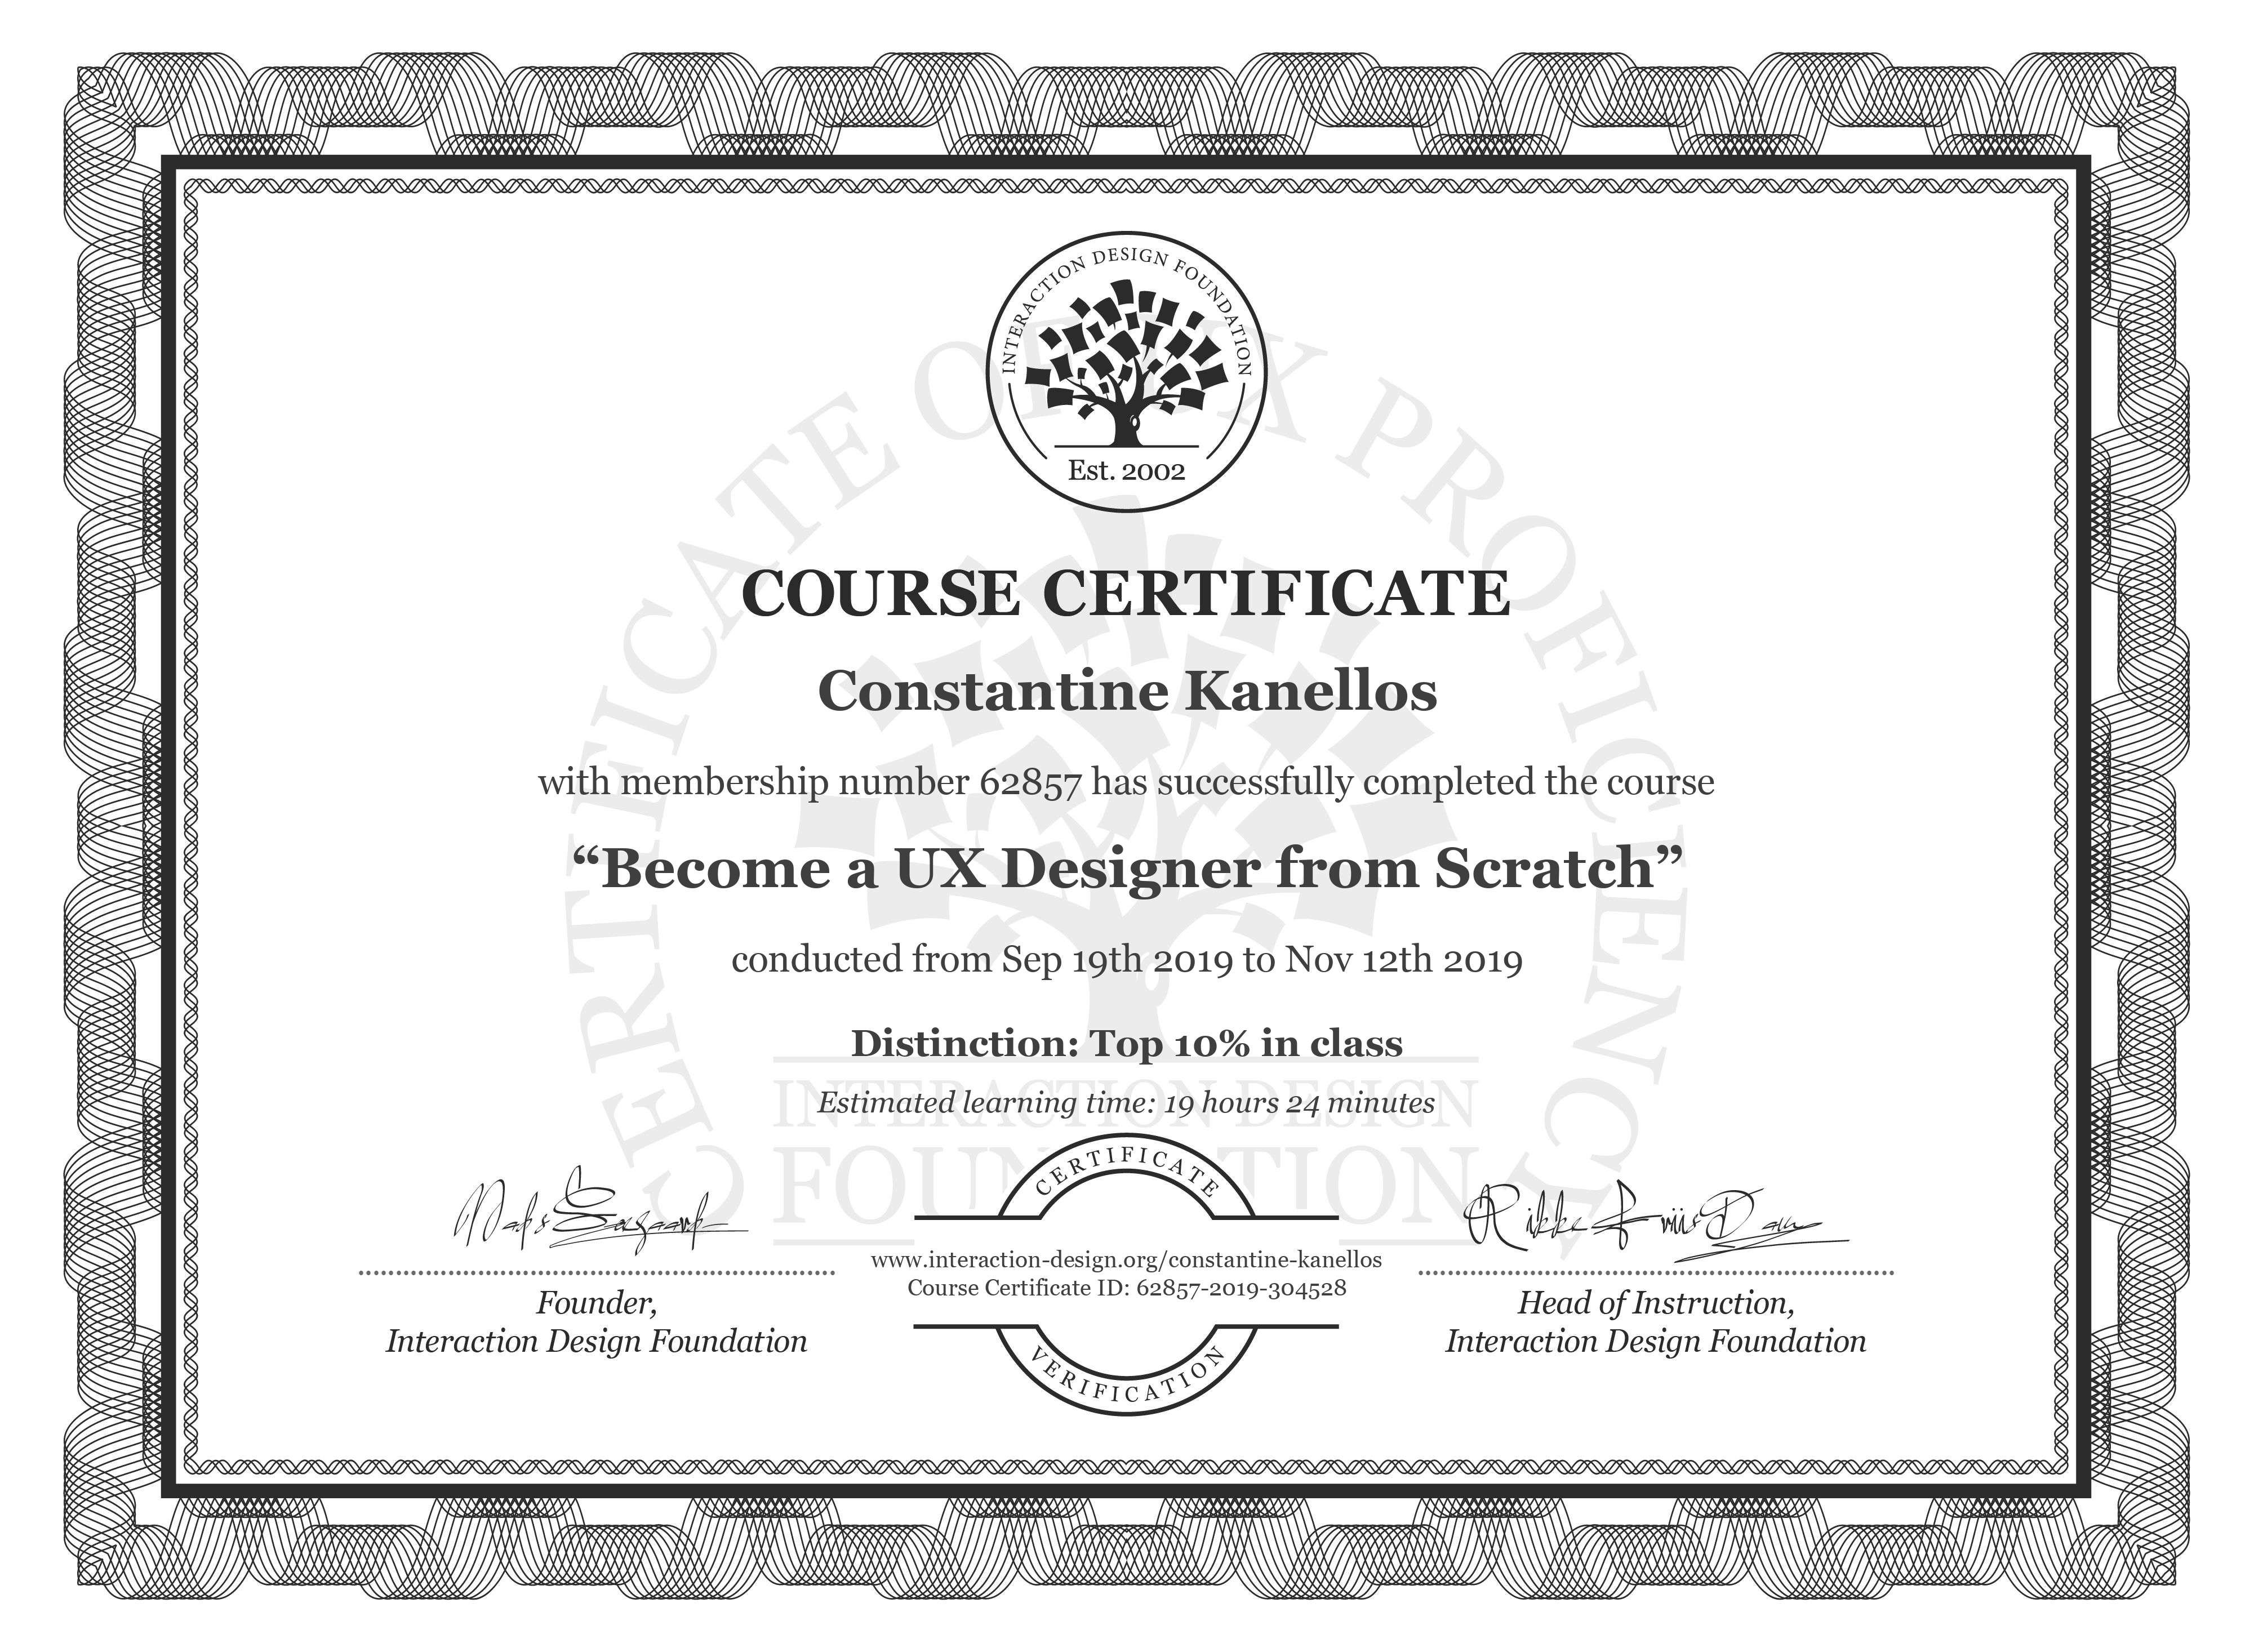 Constantine Kanellos's Course Certificate: User Experience: The Beginner's Guide